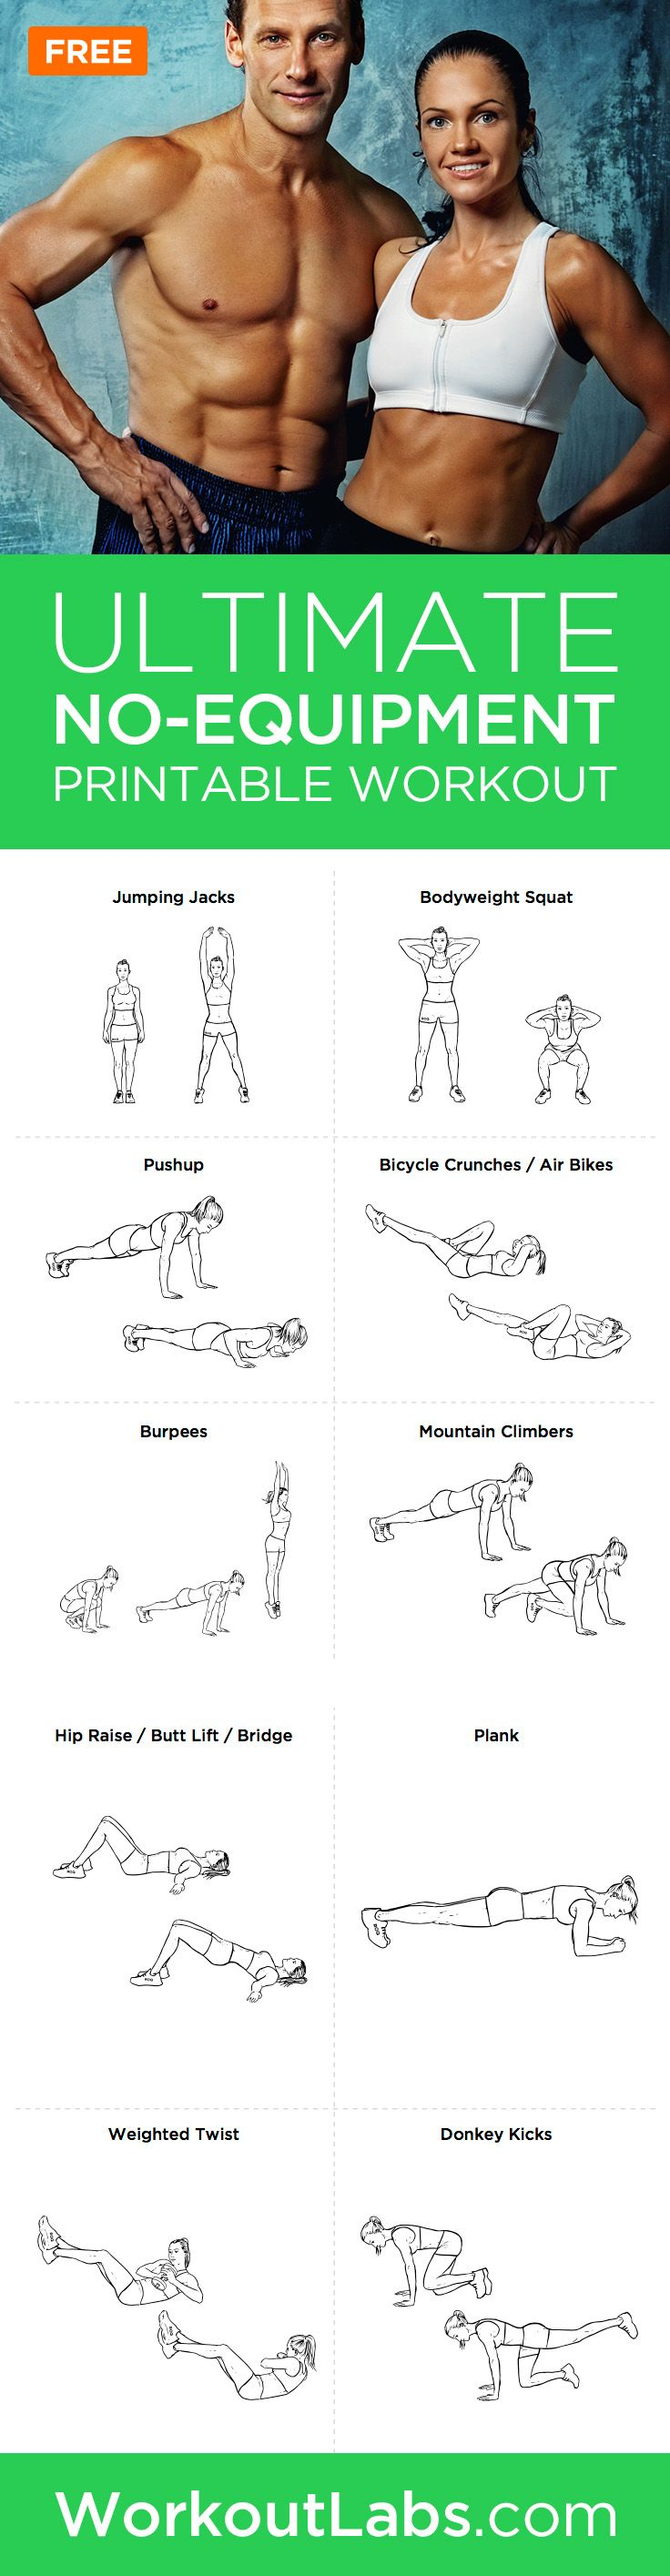 Ultimate At-Home No Equipment Workout Plan for Men and Women